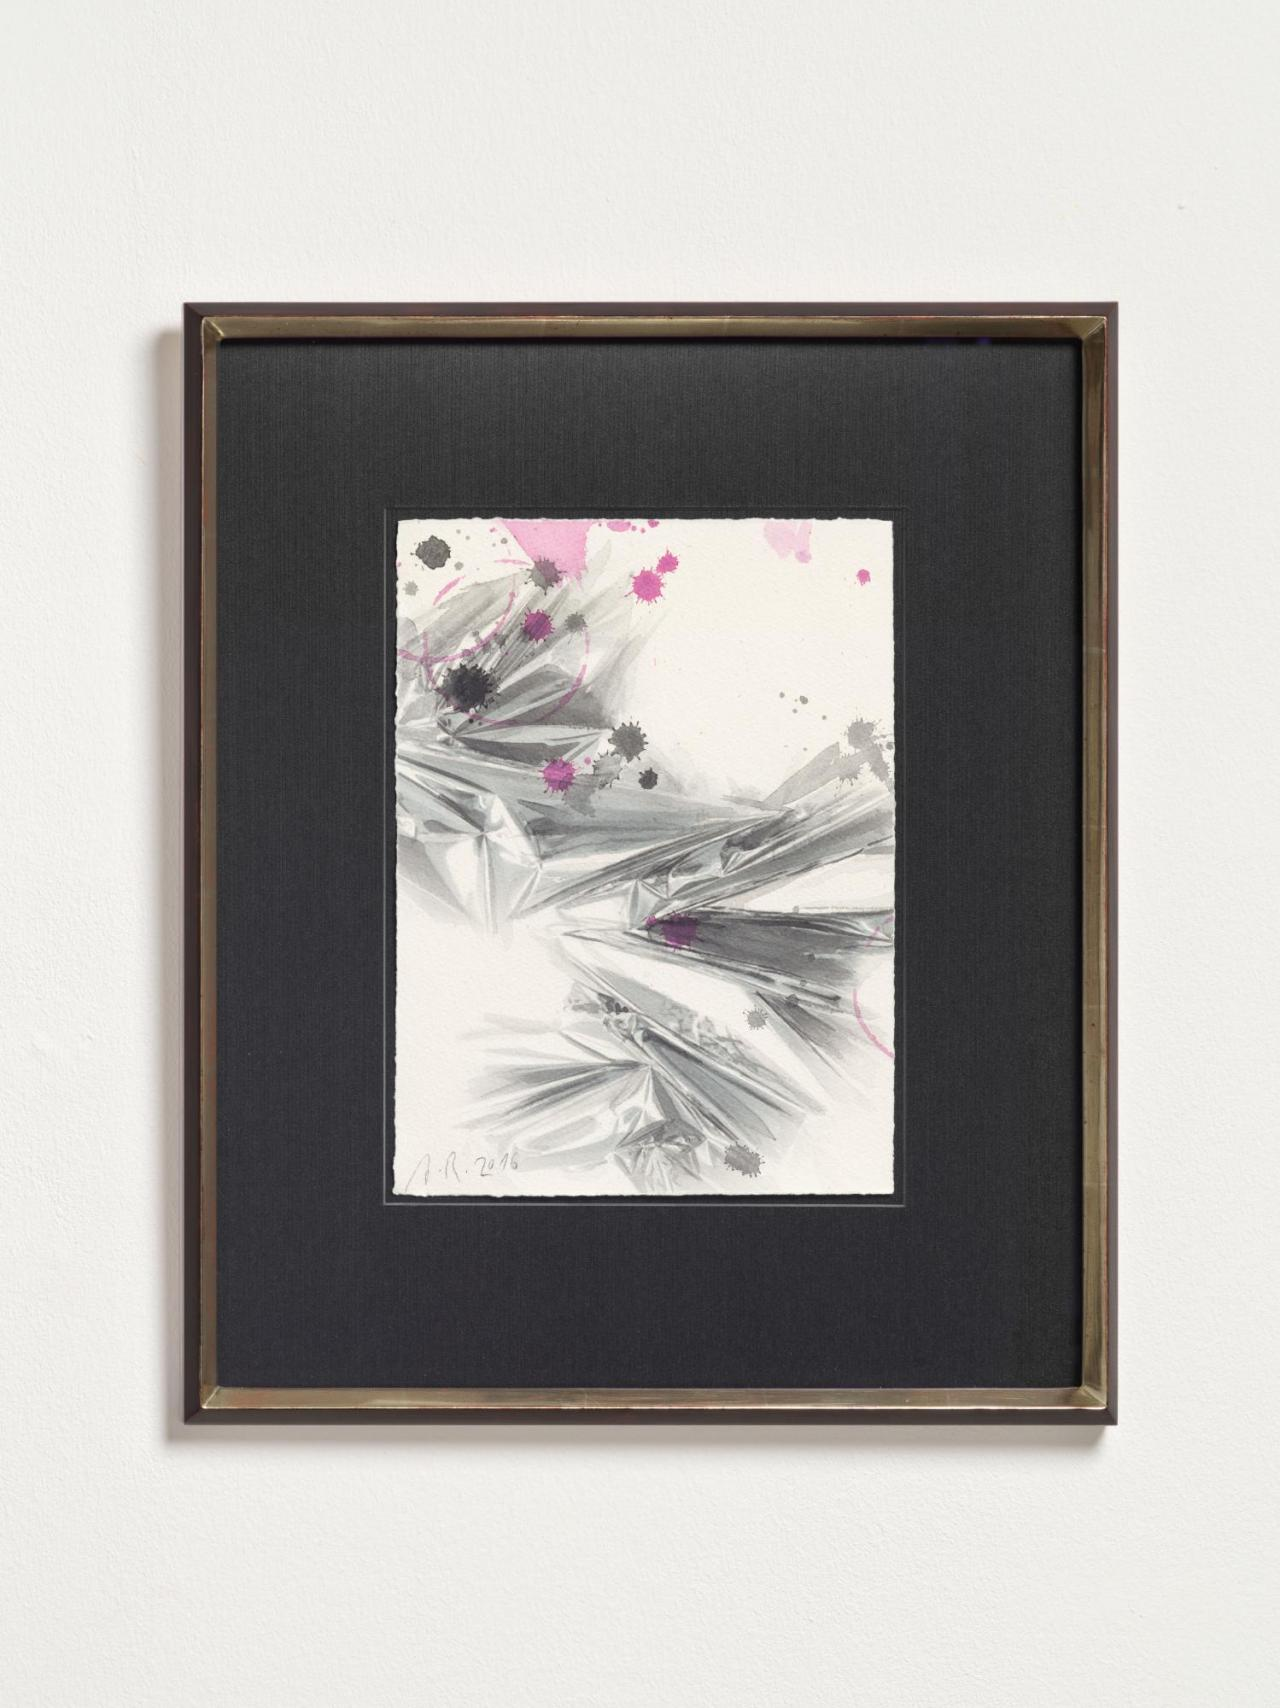 Anselm Reyle Untitled, 2016 watercolor, ink on paper, wooden frame with white gold 28.5 x 21 cm; 48.6 x 41.2 x 3 cm